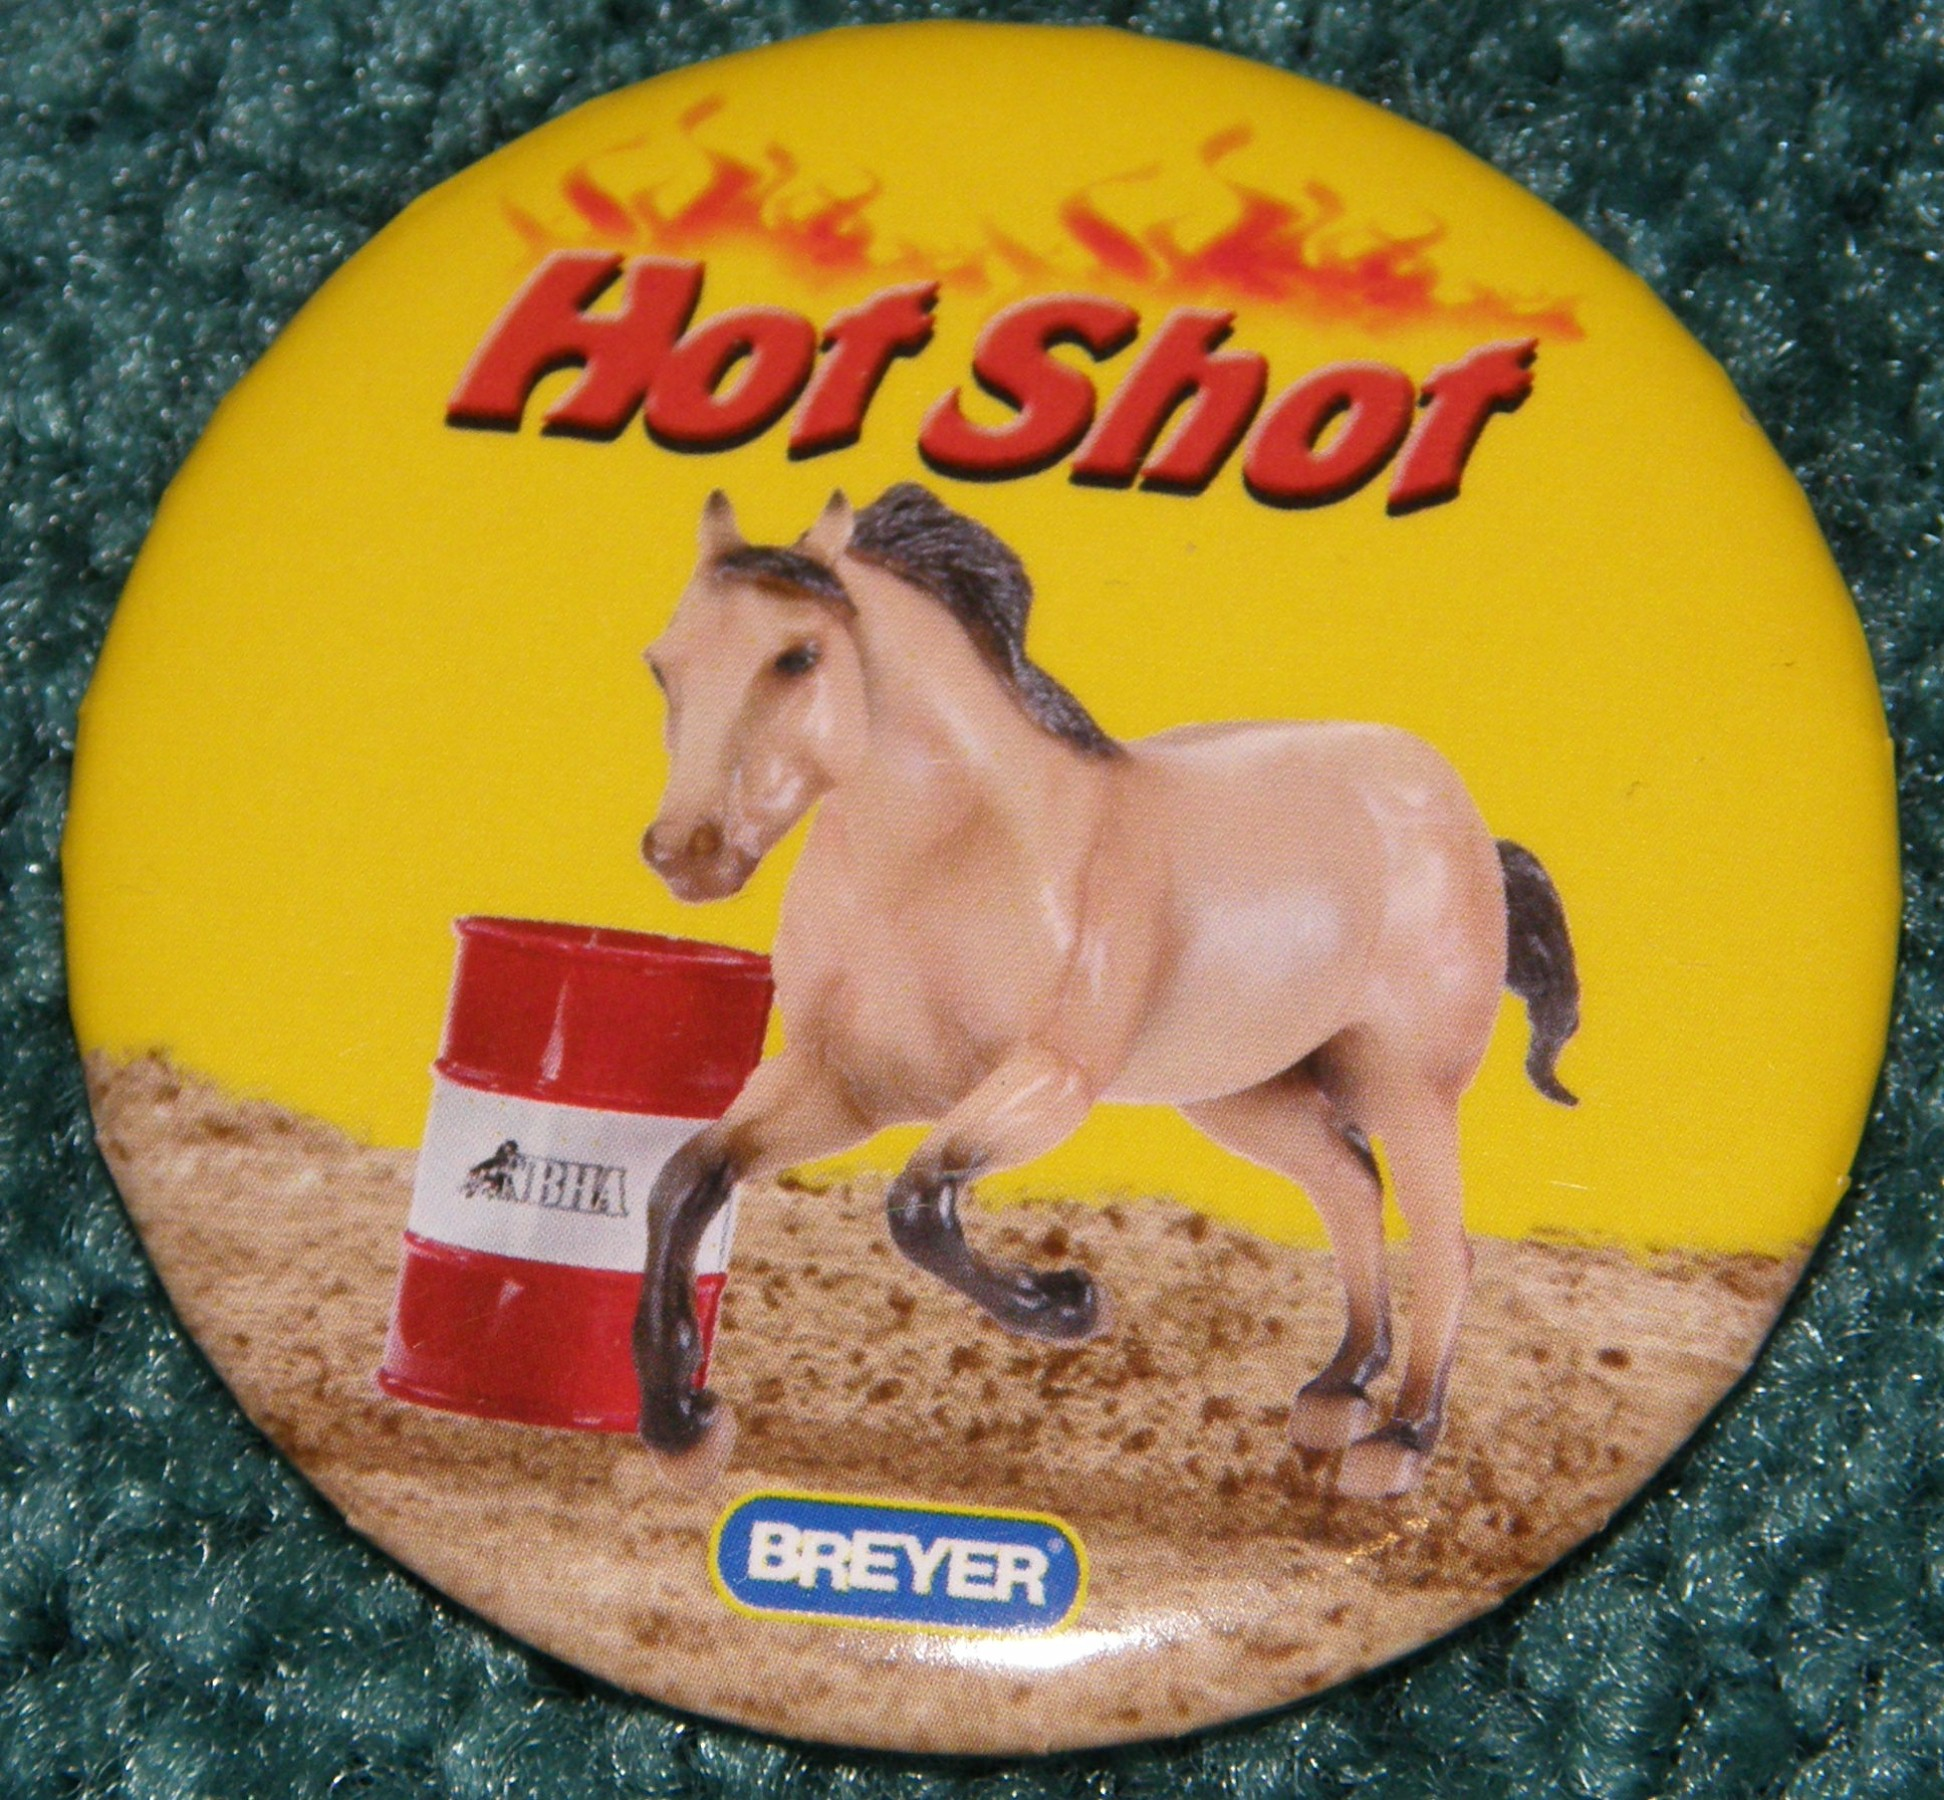 #1274 Hot Shot Barrel Racing Quarter Horse Breyer Button Pin